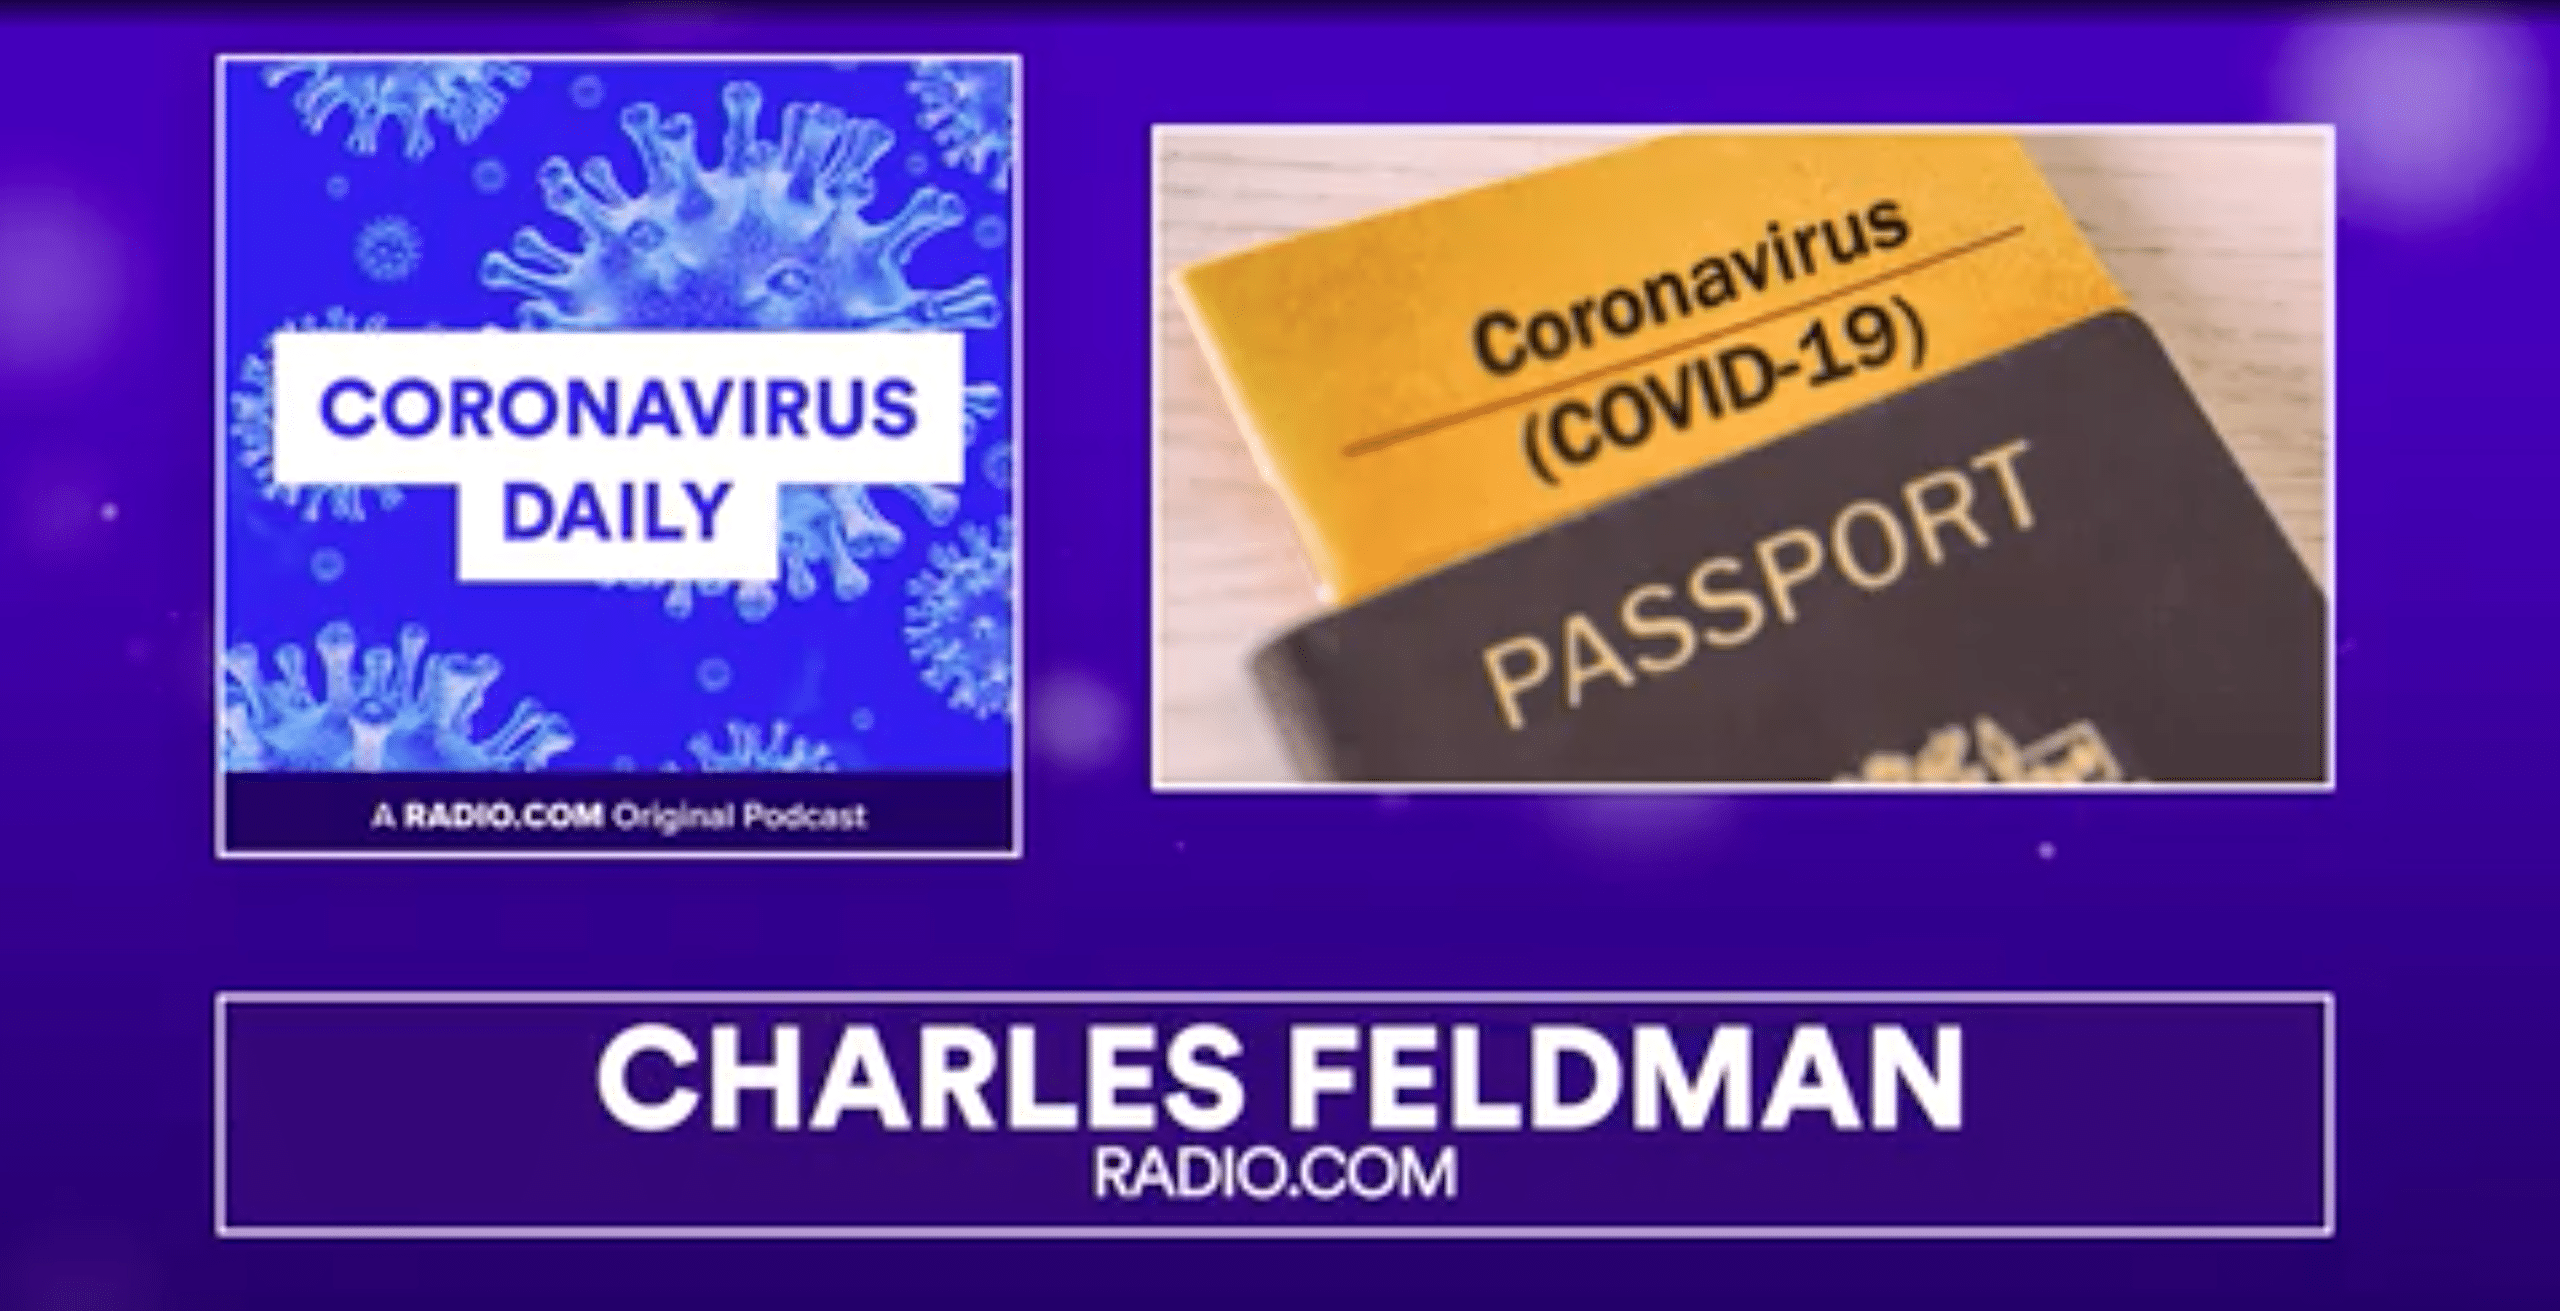 COVID-19 testing now available at Philadelphia International Airport